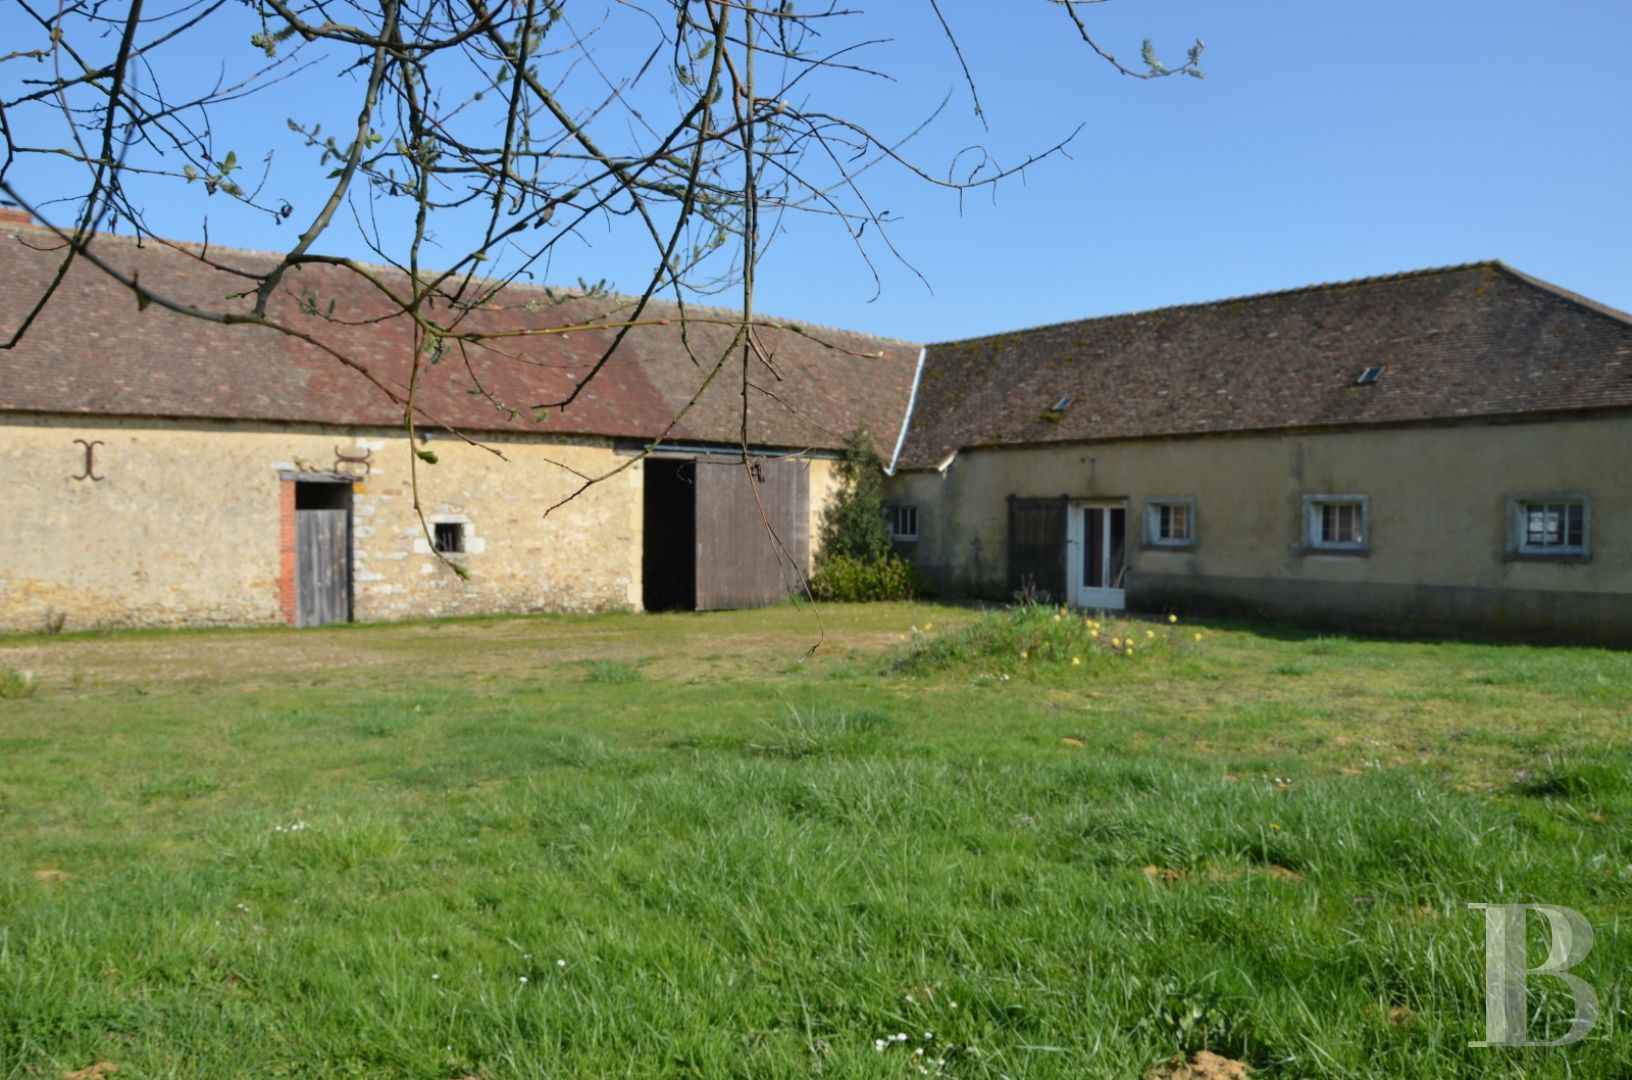 property for sale France pays de loire residences for - 11 zoom